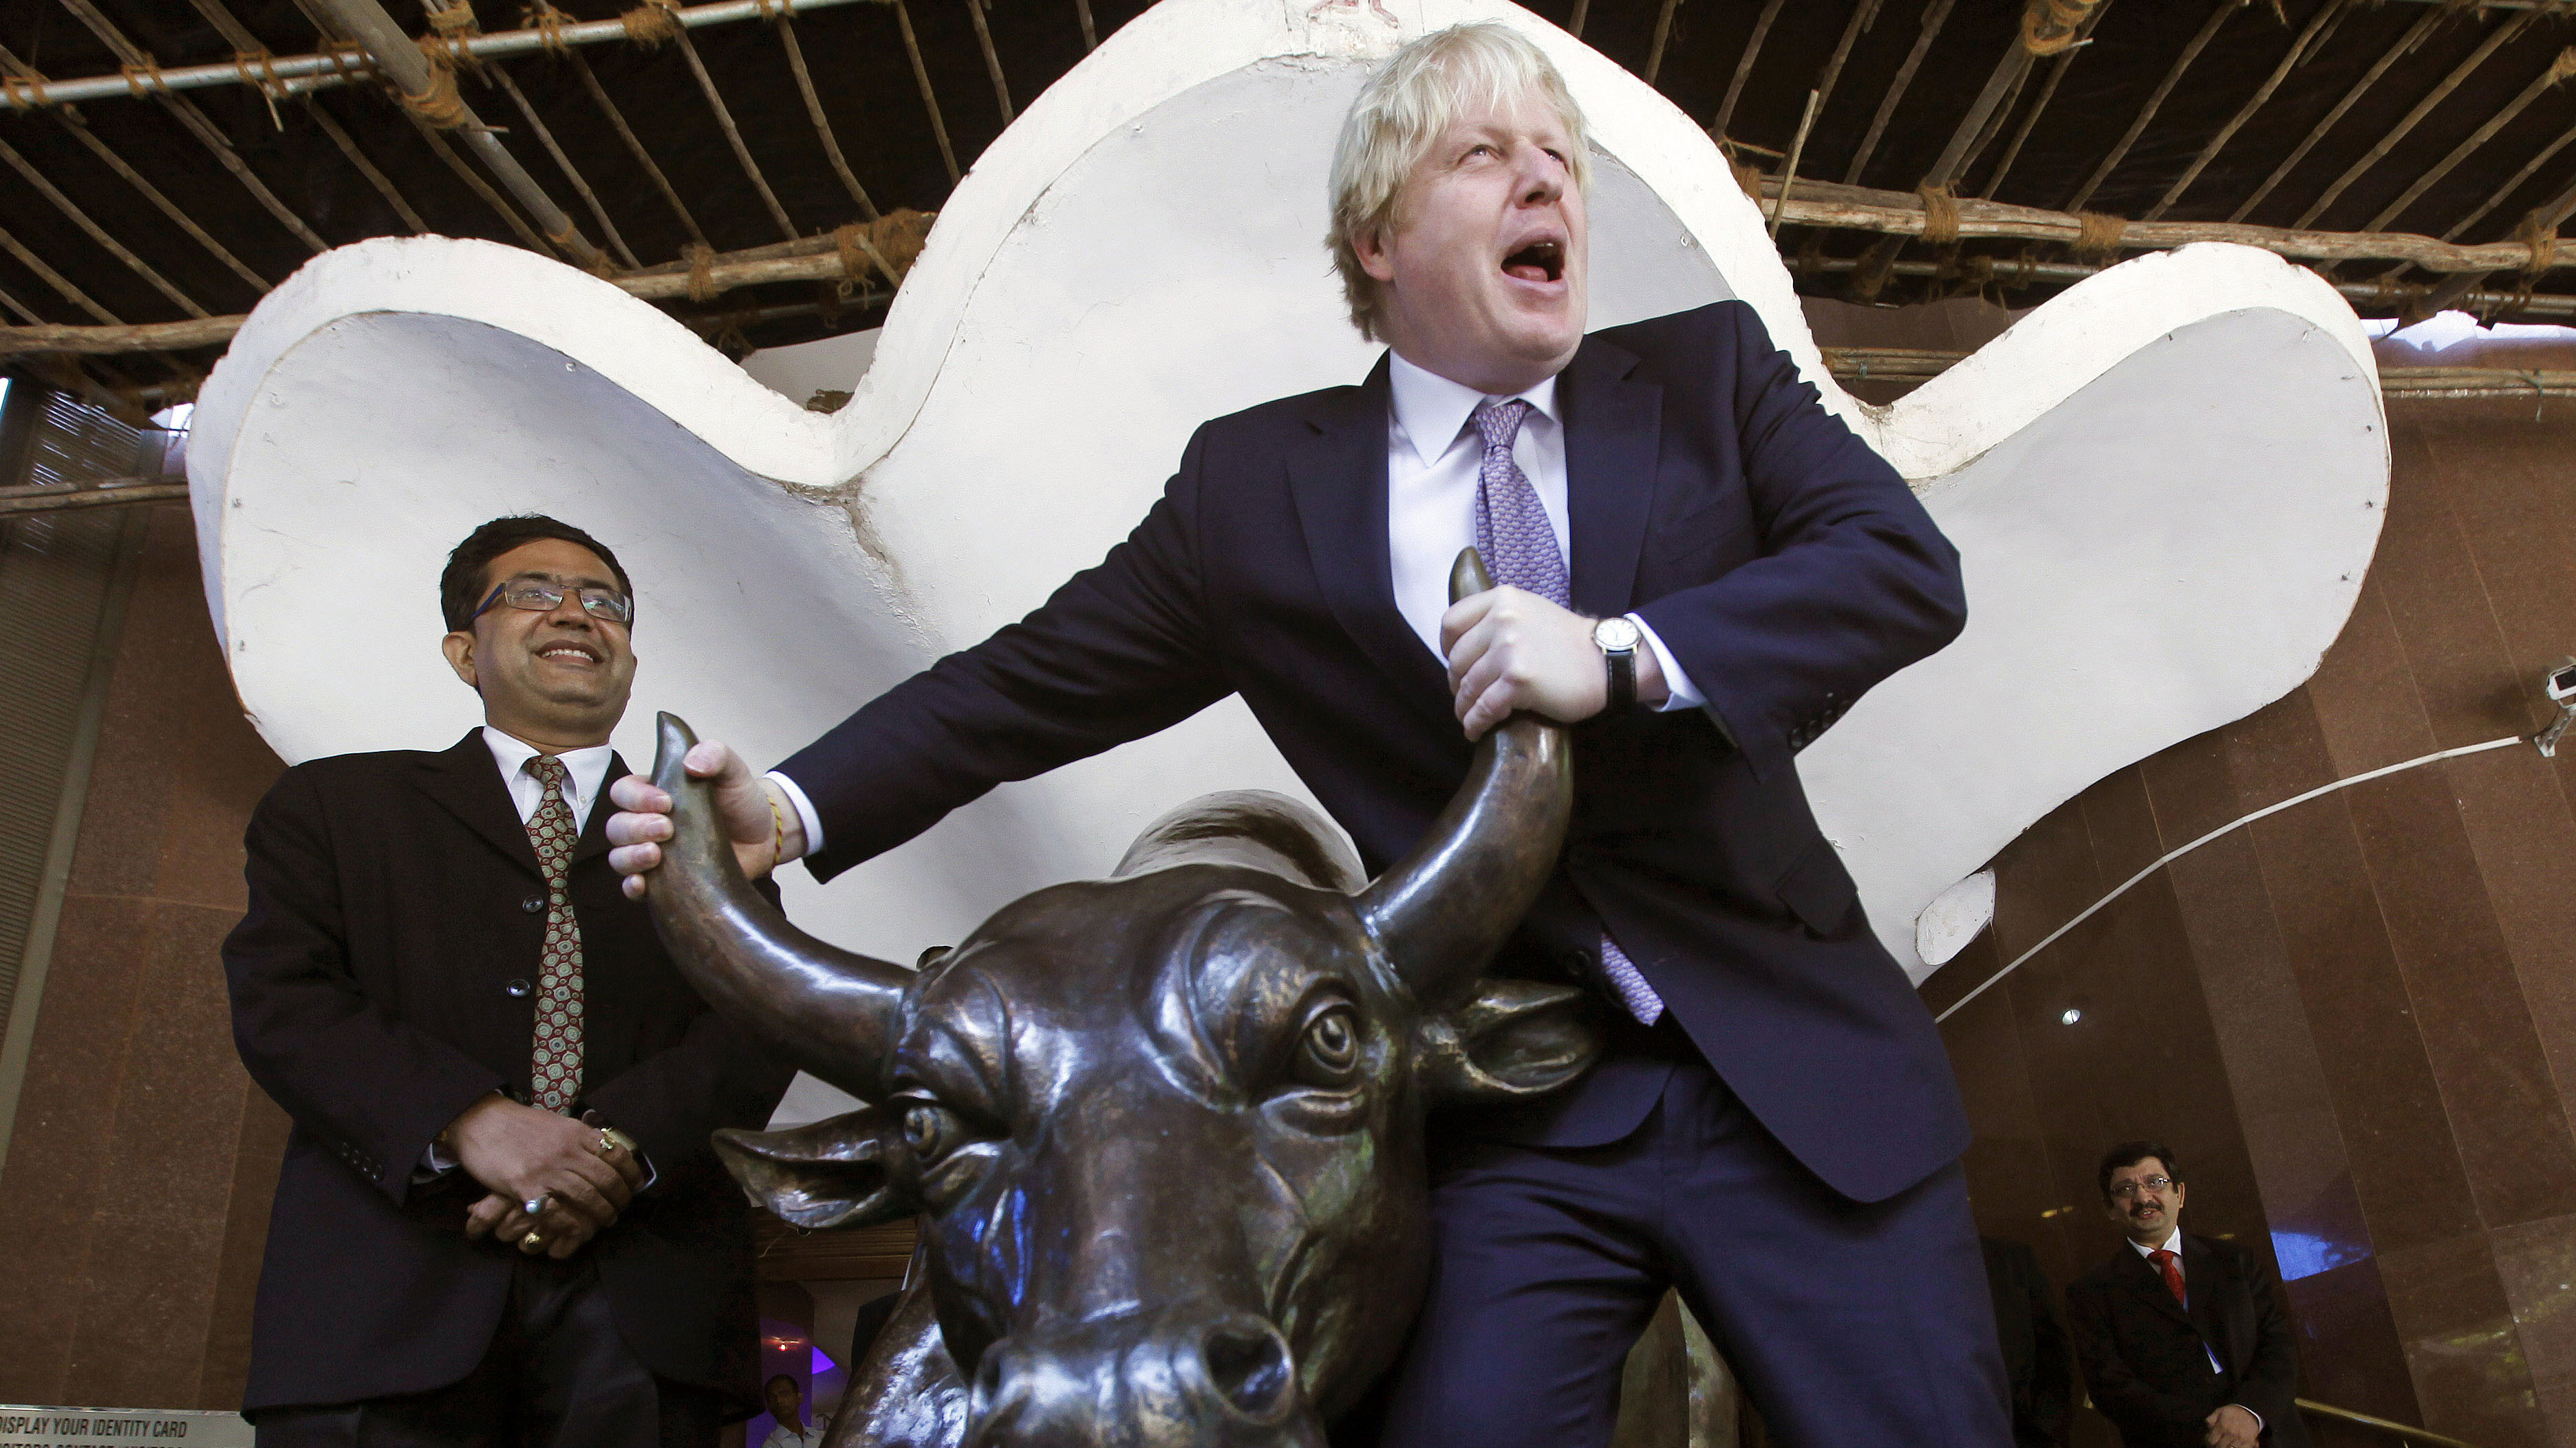 Mayor of London Boris Johnson poses with the bronze statue of a bull outside the Bombay Stock Exchange (BSE) after the launch of new carbon market index at an event in Mumbai, India, Friday, Nov. 30, 2012. Johnson is in India to promote London as the destination of choice for investors and international trade, according to press release.